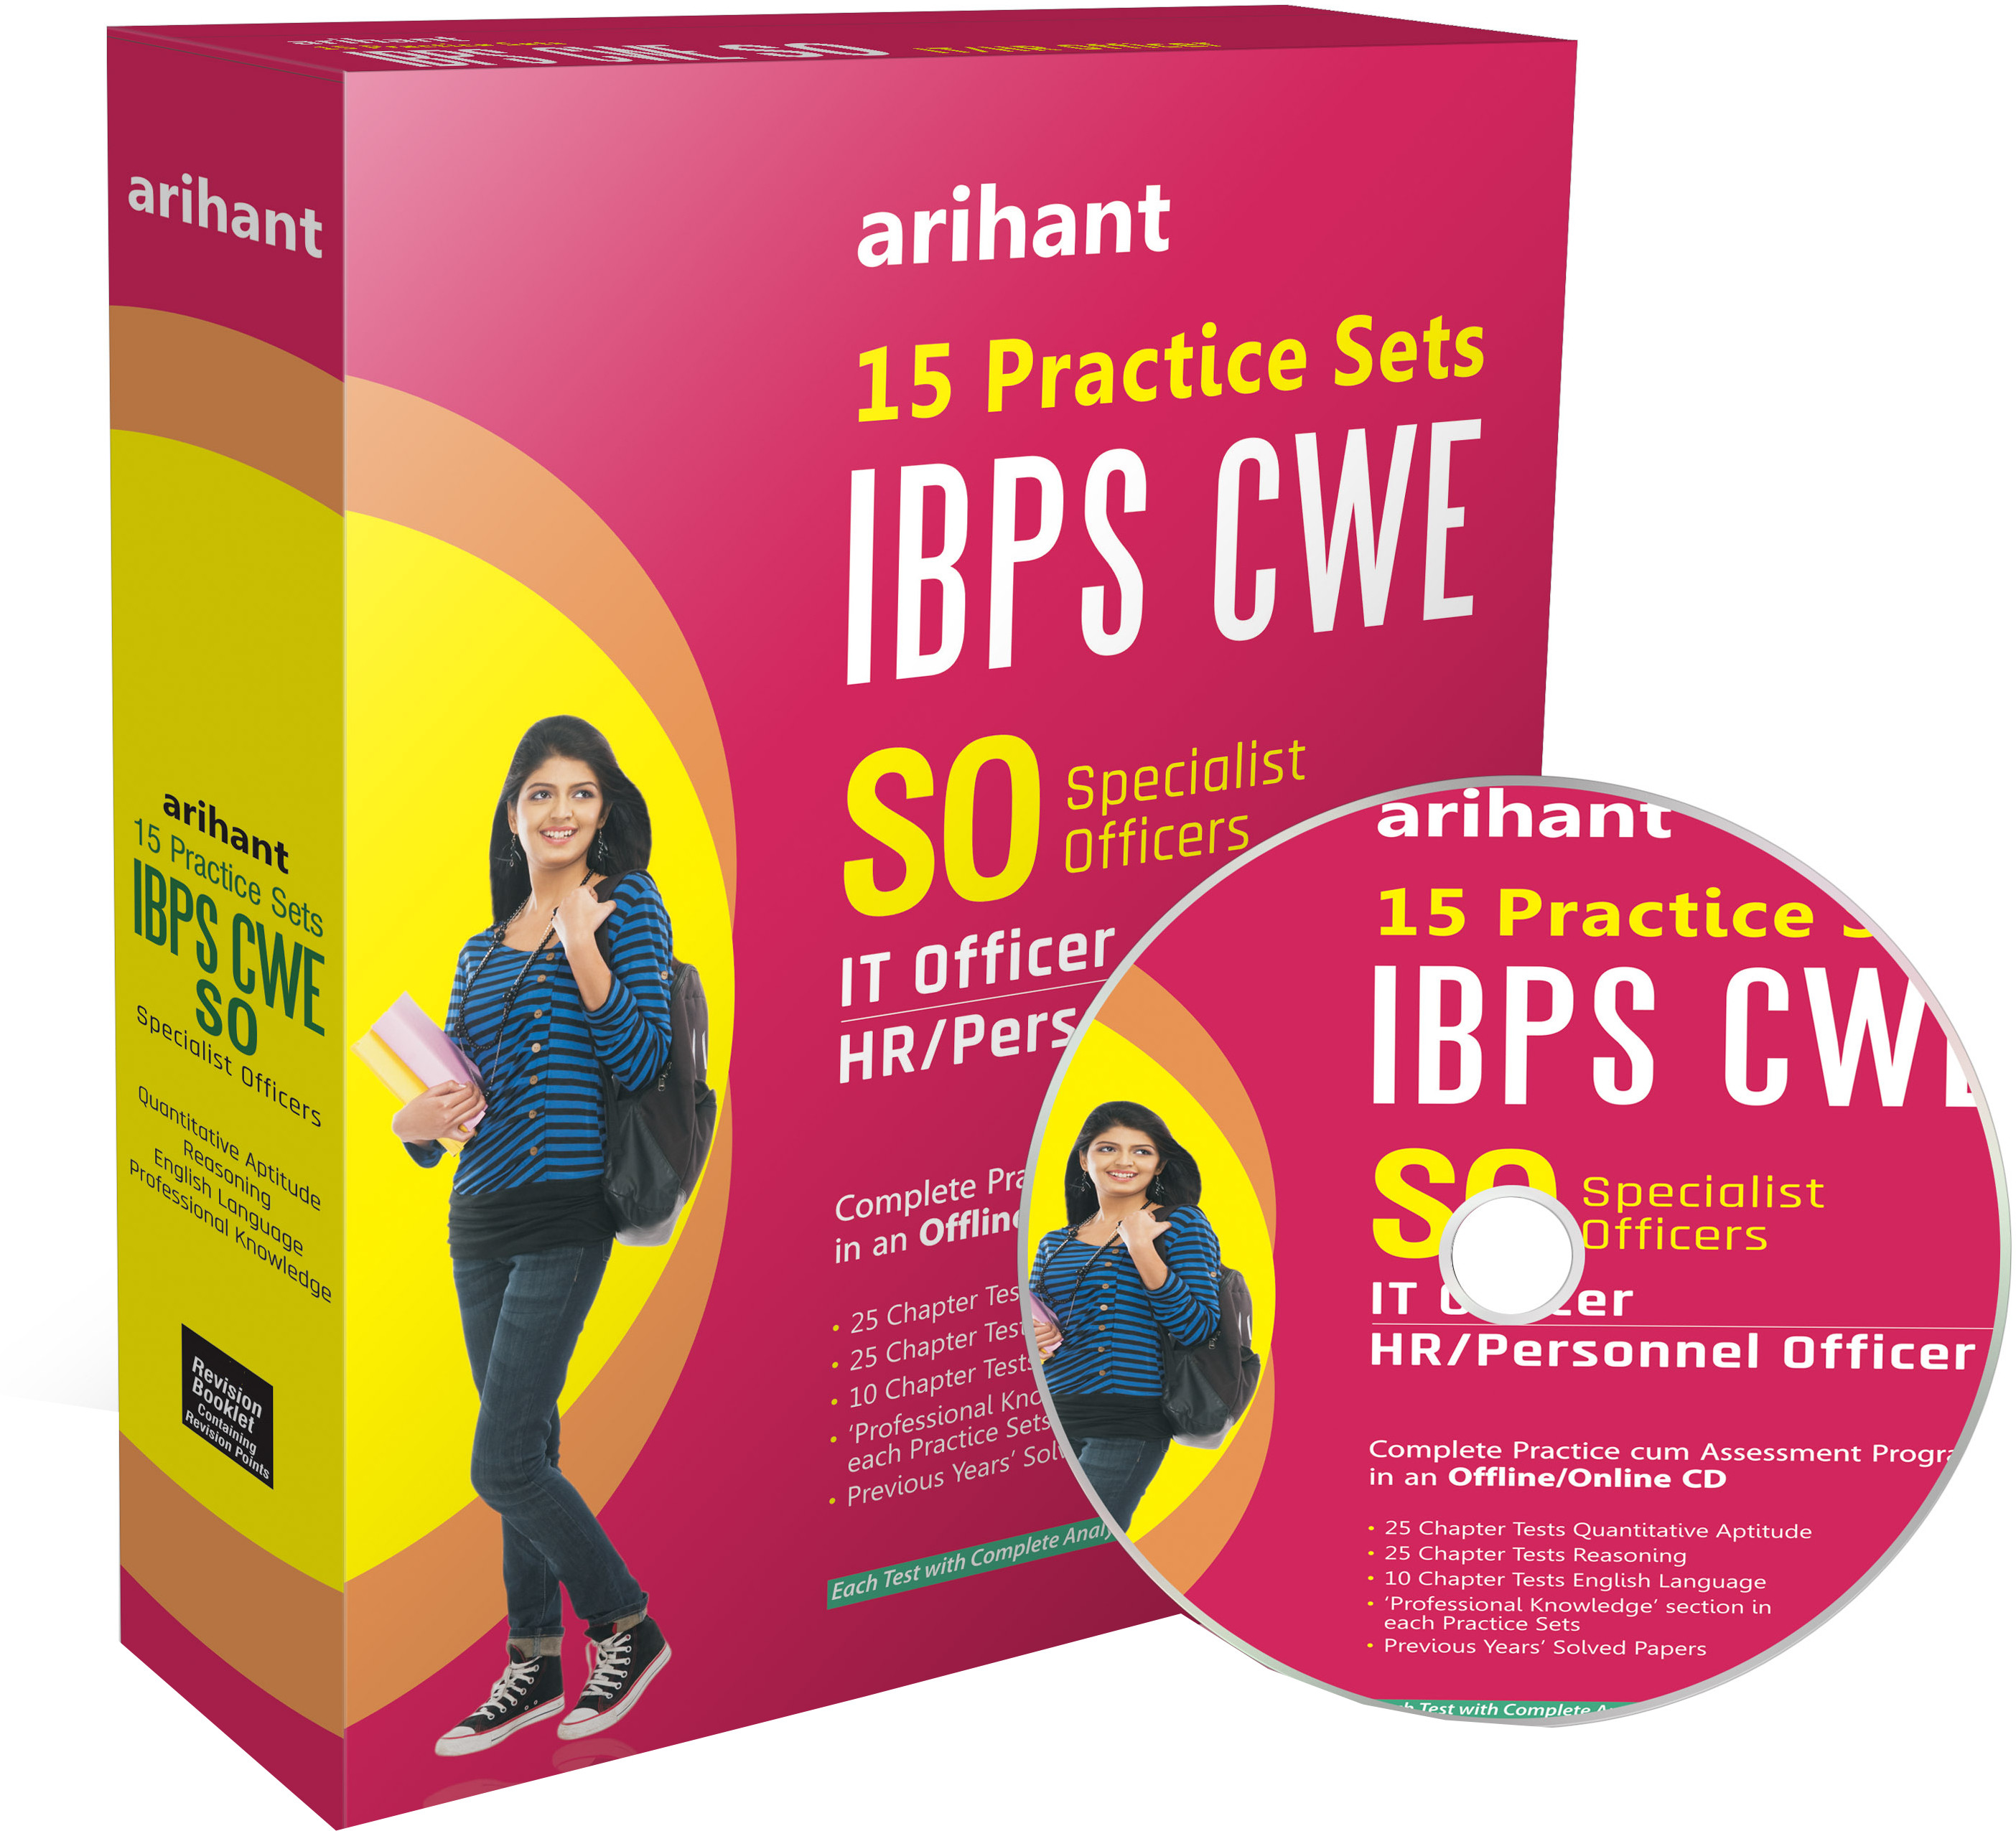 Arihant IBPS CWE SO - IT Officer / HR / Personnel Officer : 15 Practice Sets